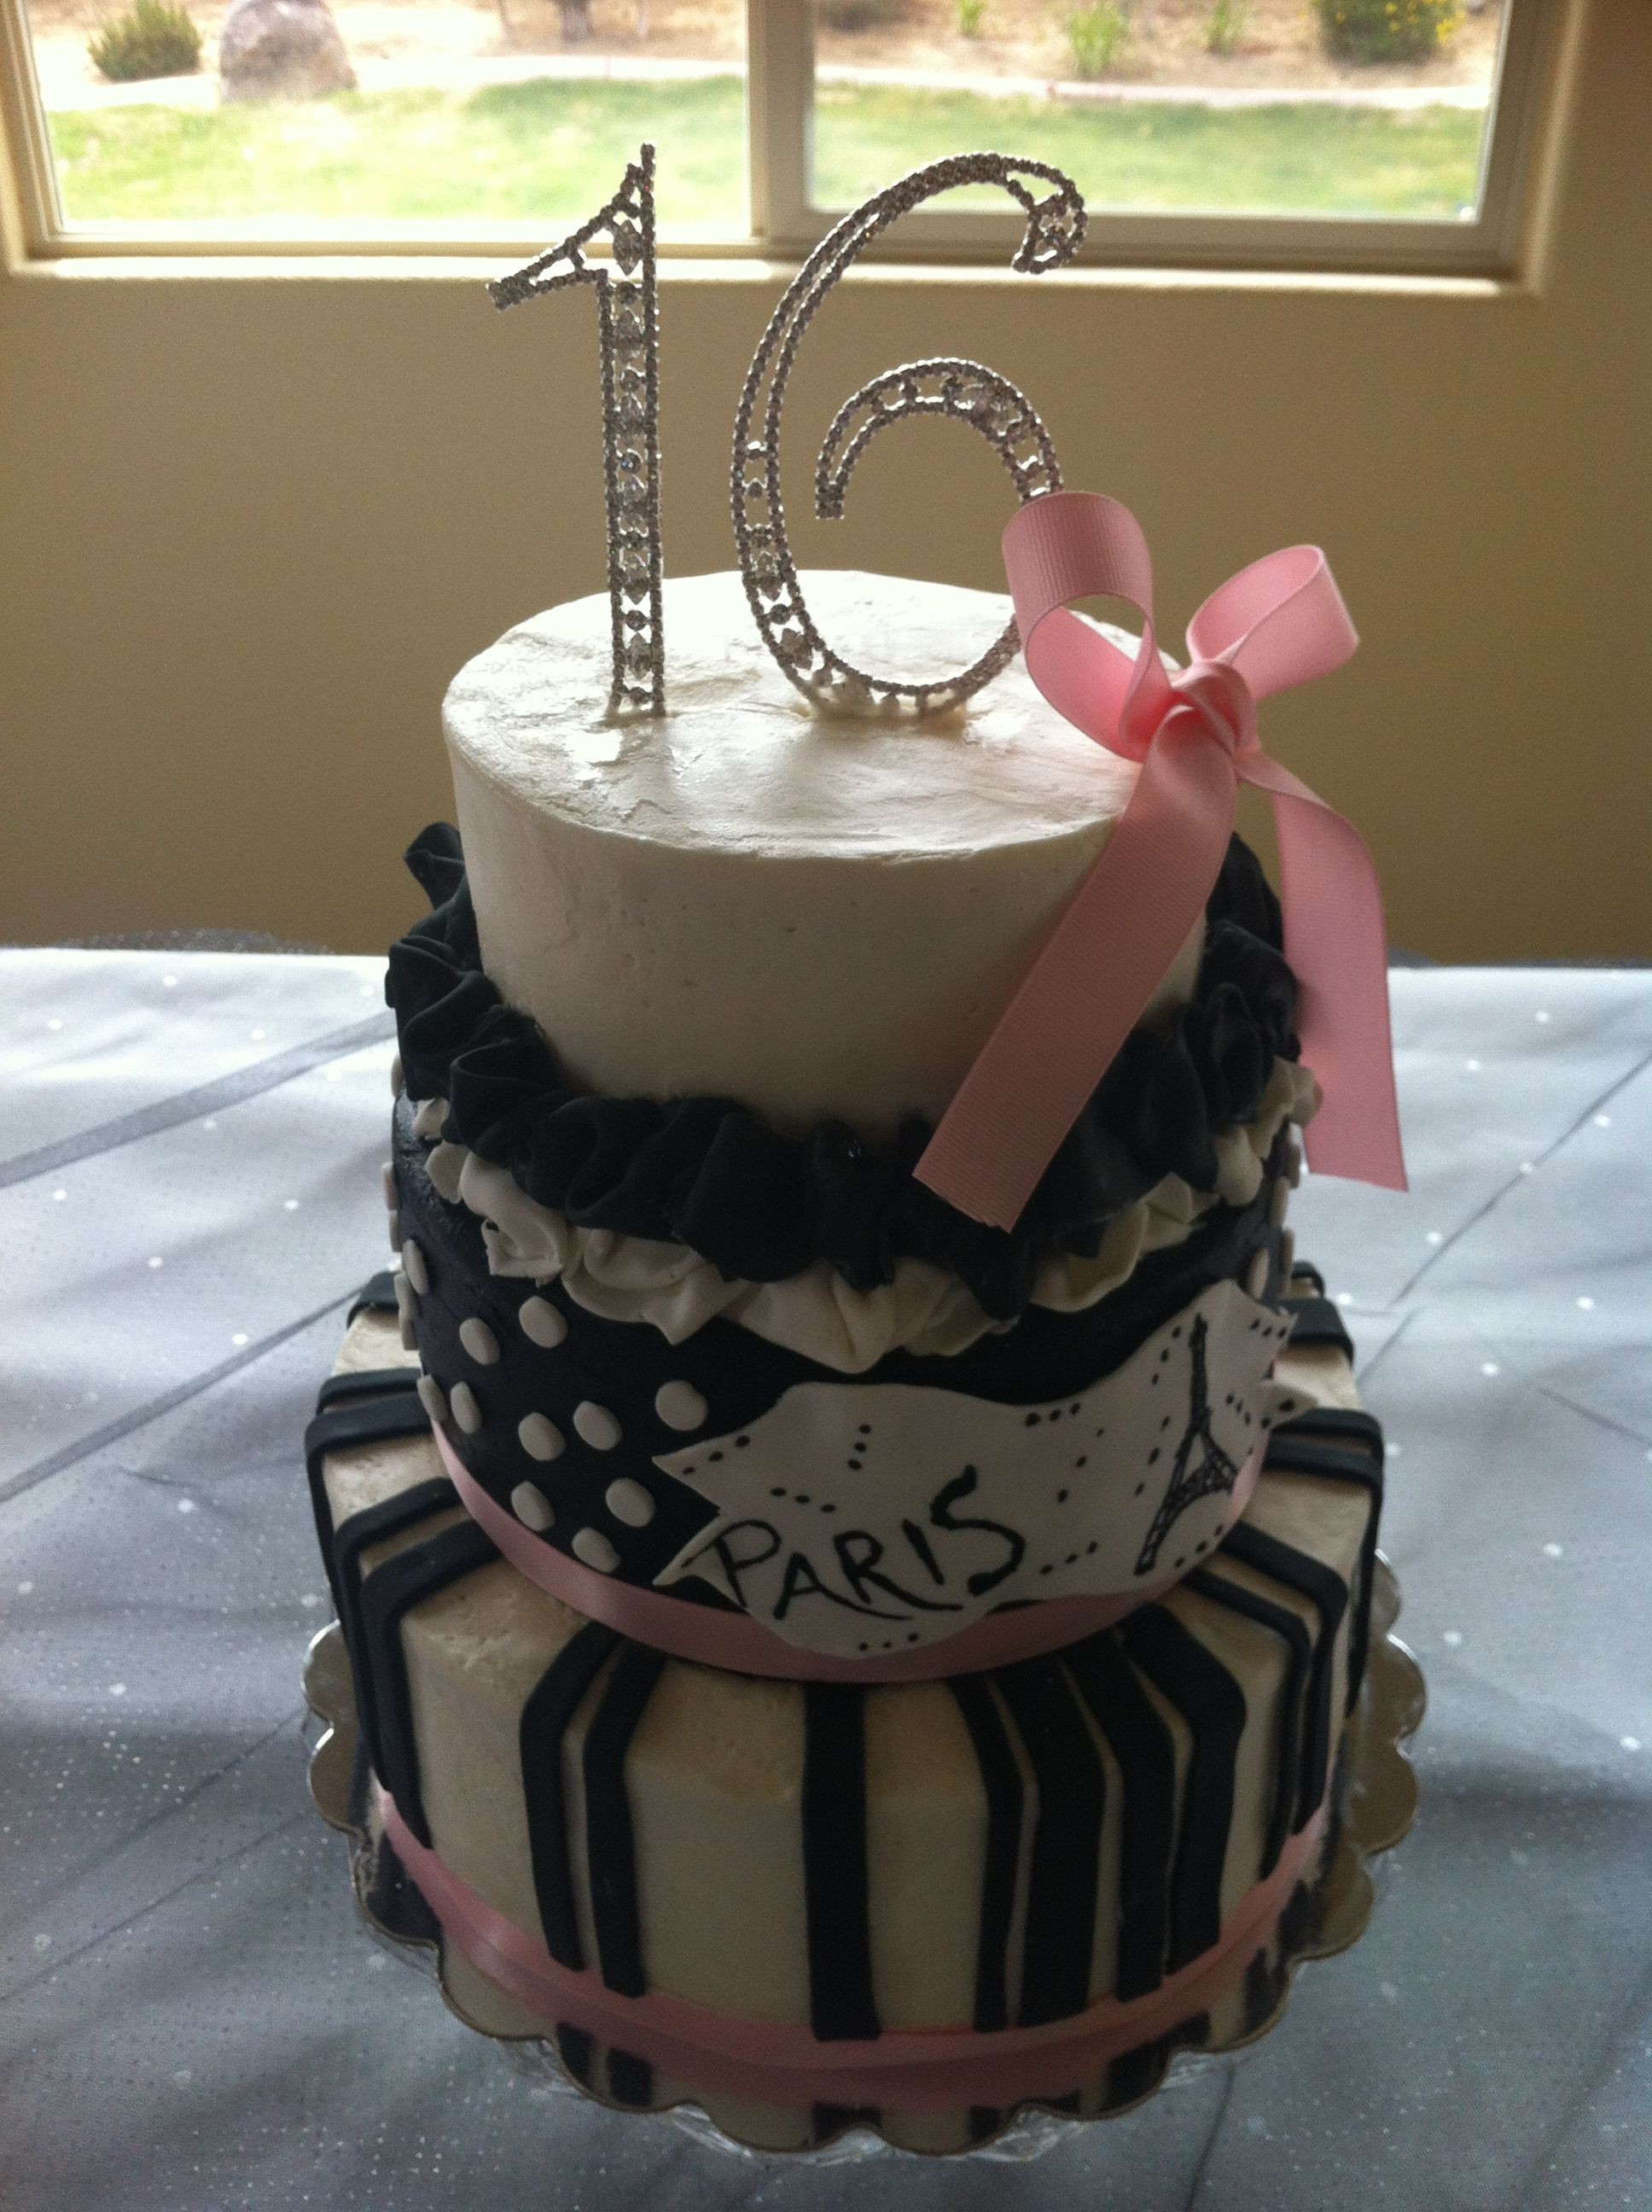 Wedding Cakes Reno  Wedding Cakes Reno Nv Fresh Sweet 16 Cake Cake by Tiers